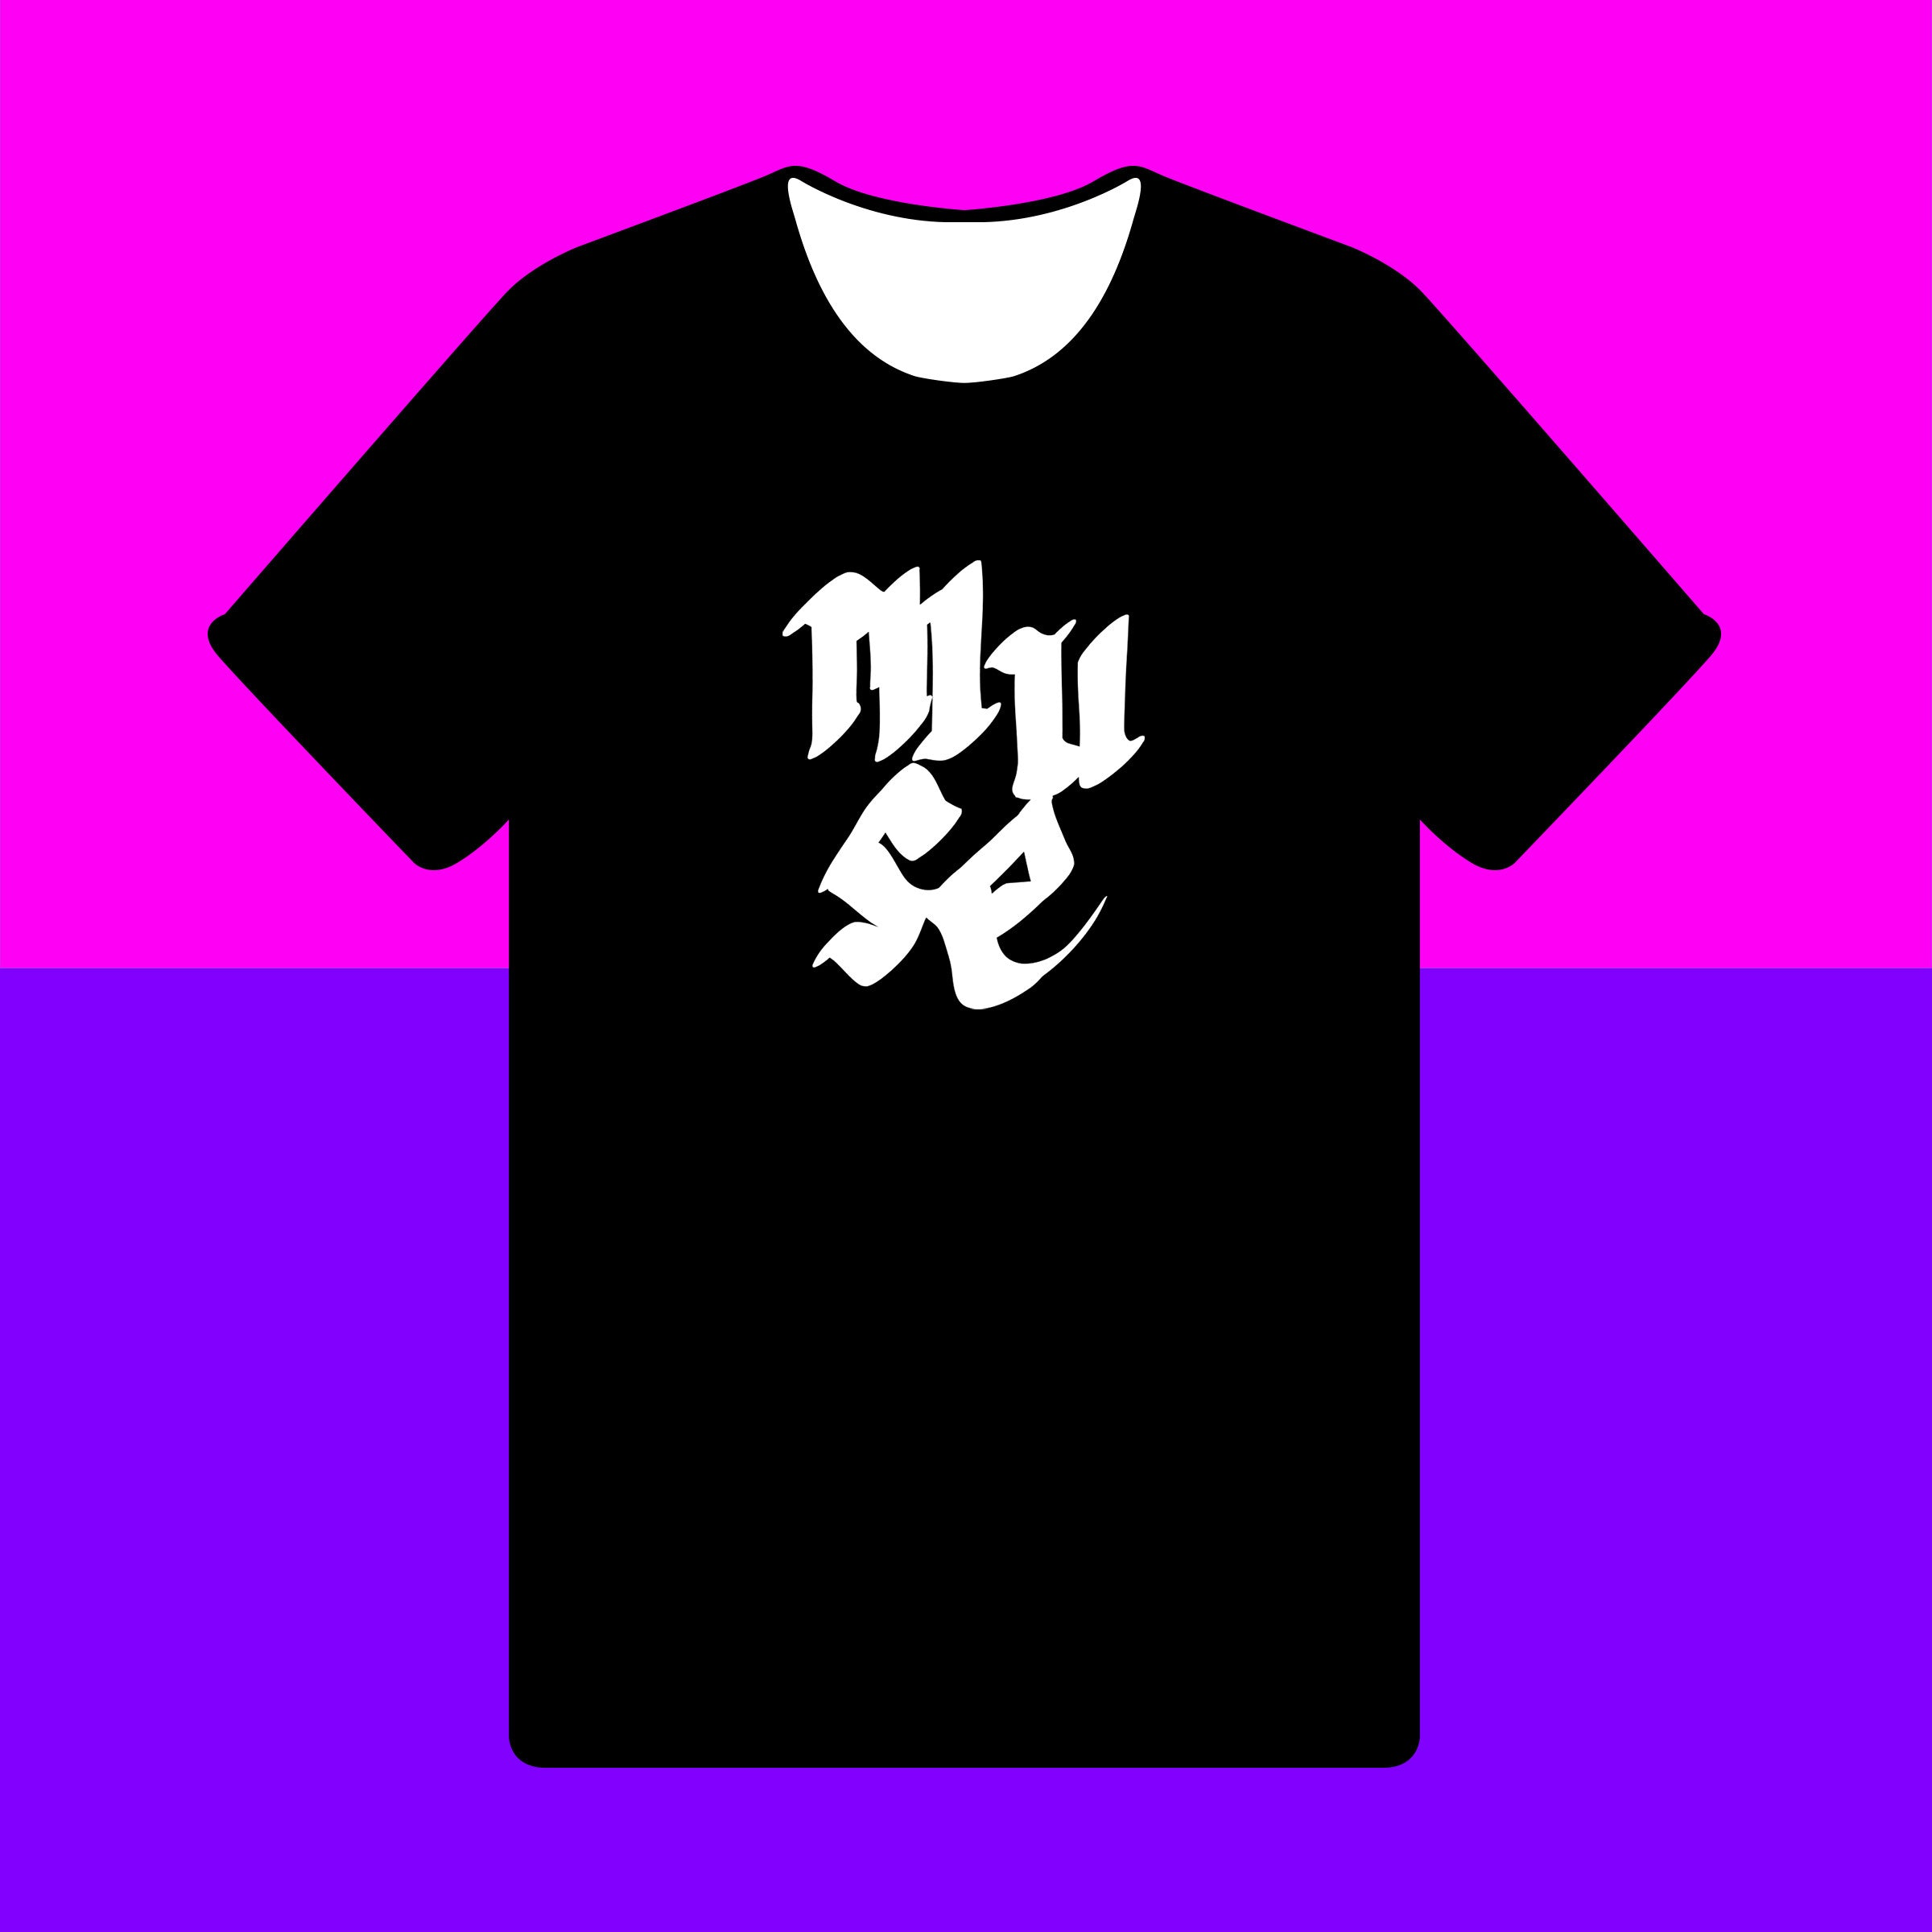 MUSE { Unisex Black/White Premium Music-inspired Graphic Print T-shirt }